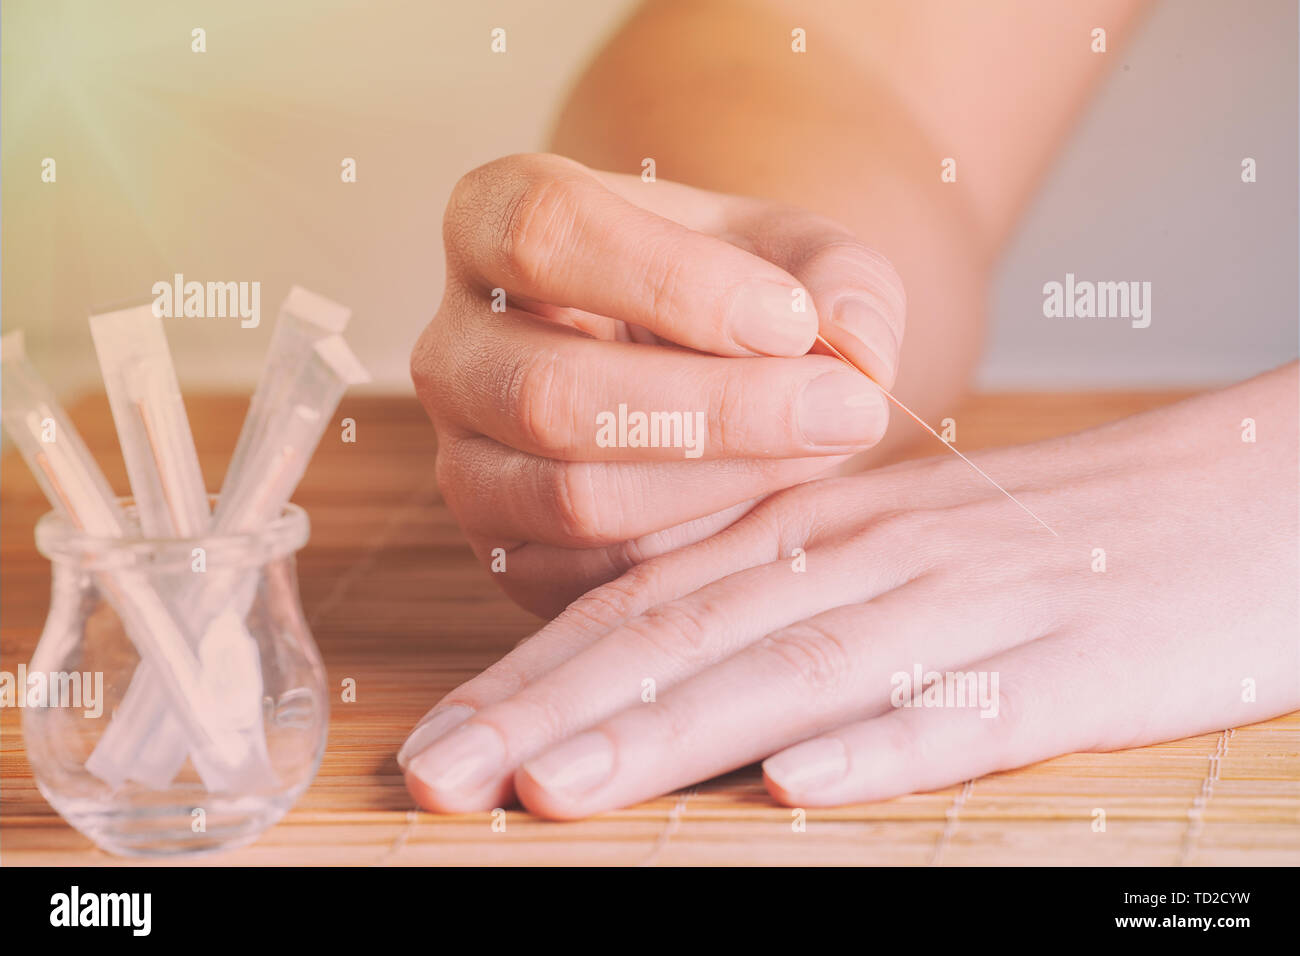 Self applying acupuncture needle into hand - Stock Image